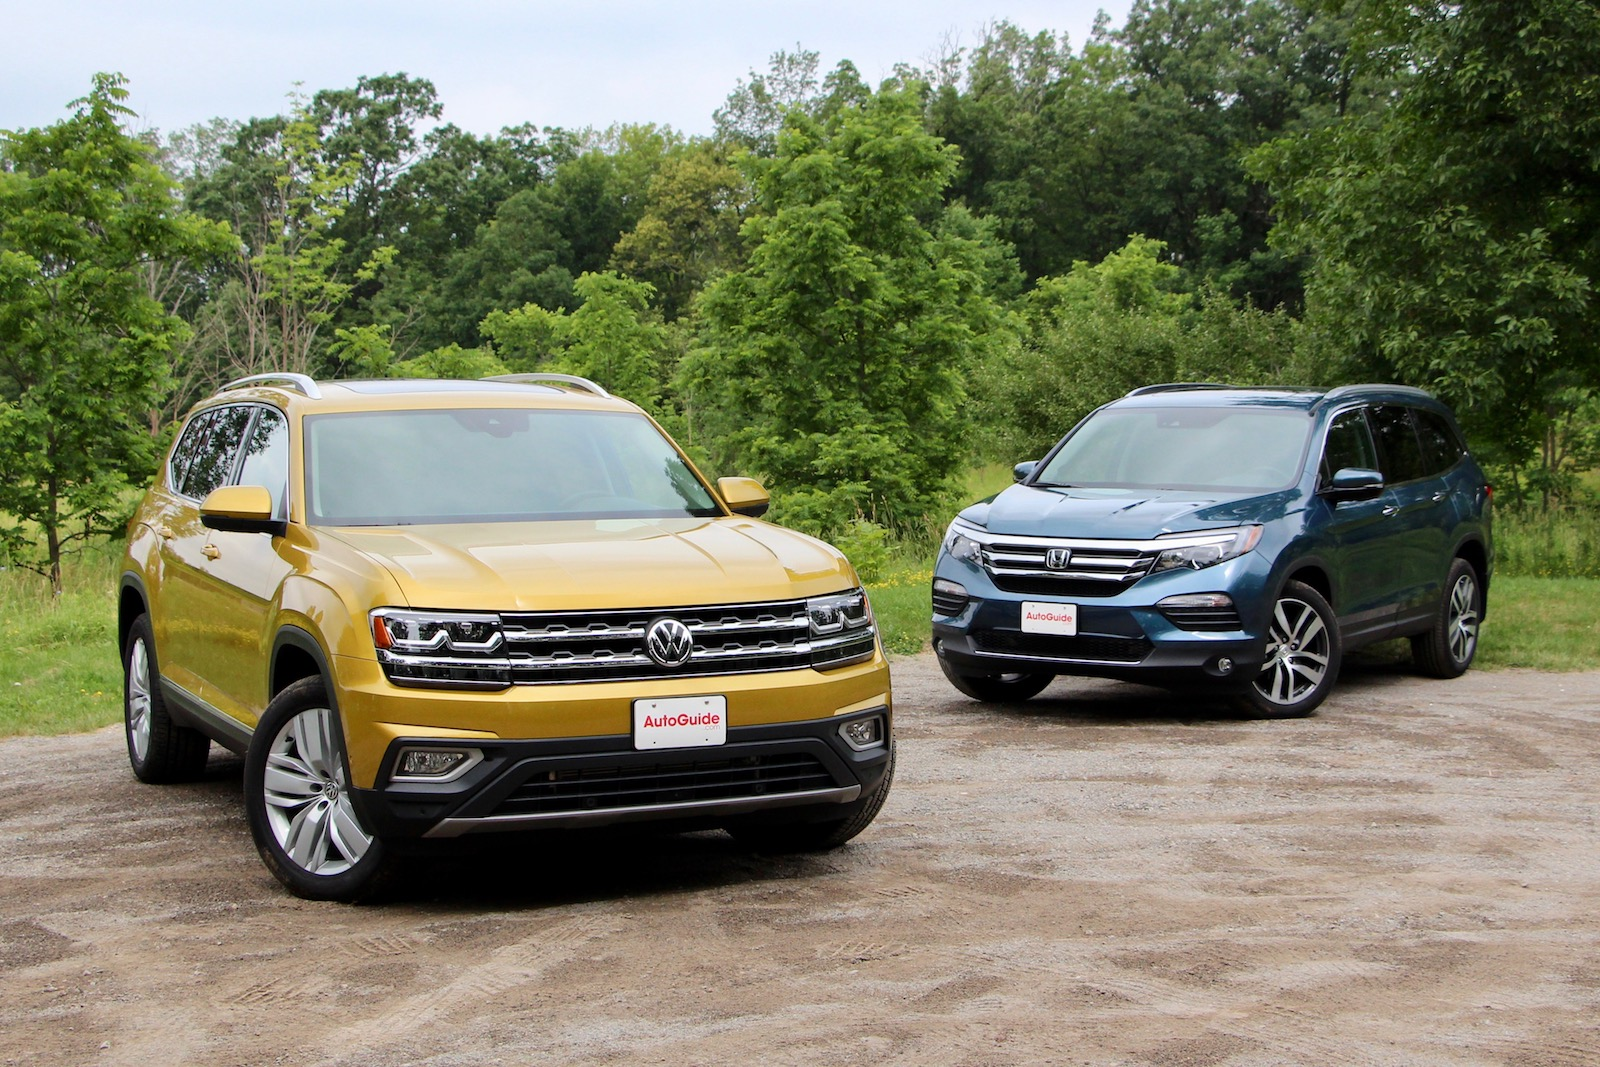 2018 Volkswagen Atlas vs 2017 Honda Pilot Comparison Test - AutoGuide.com